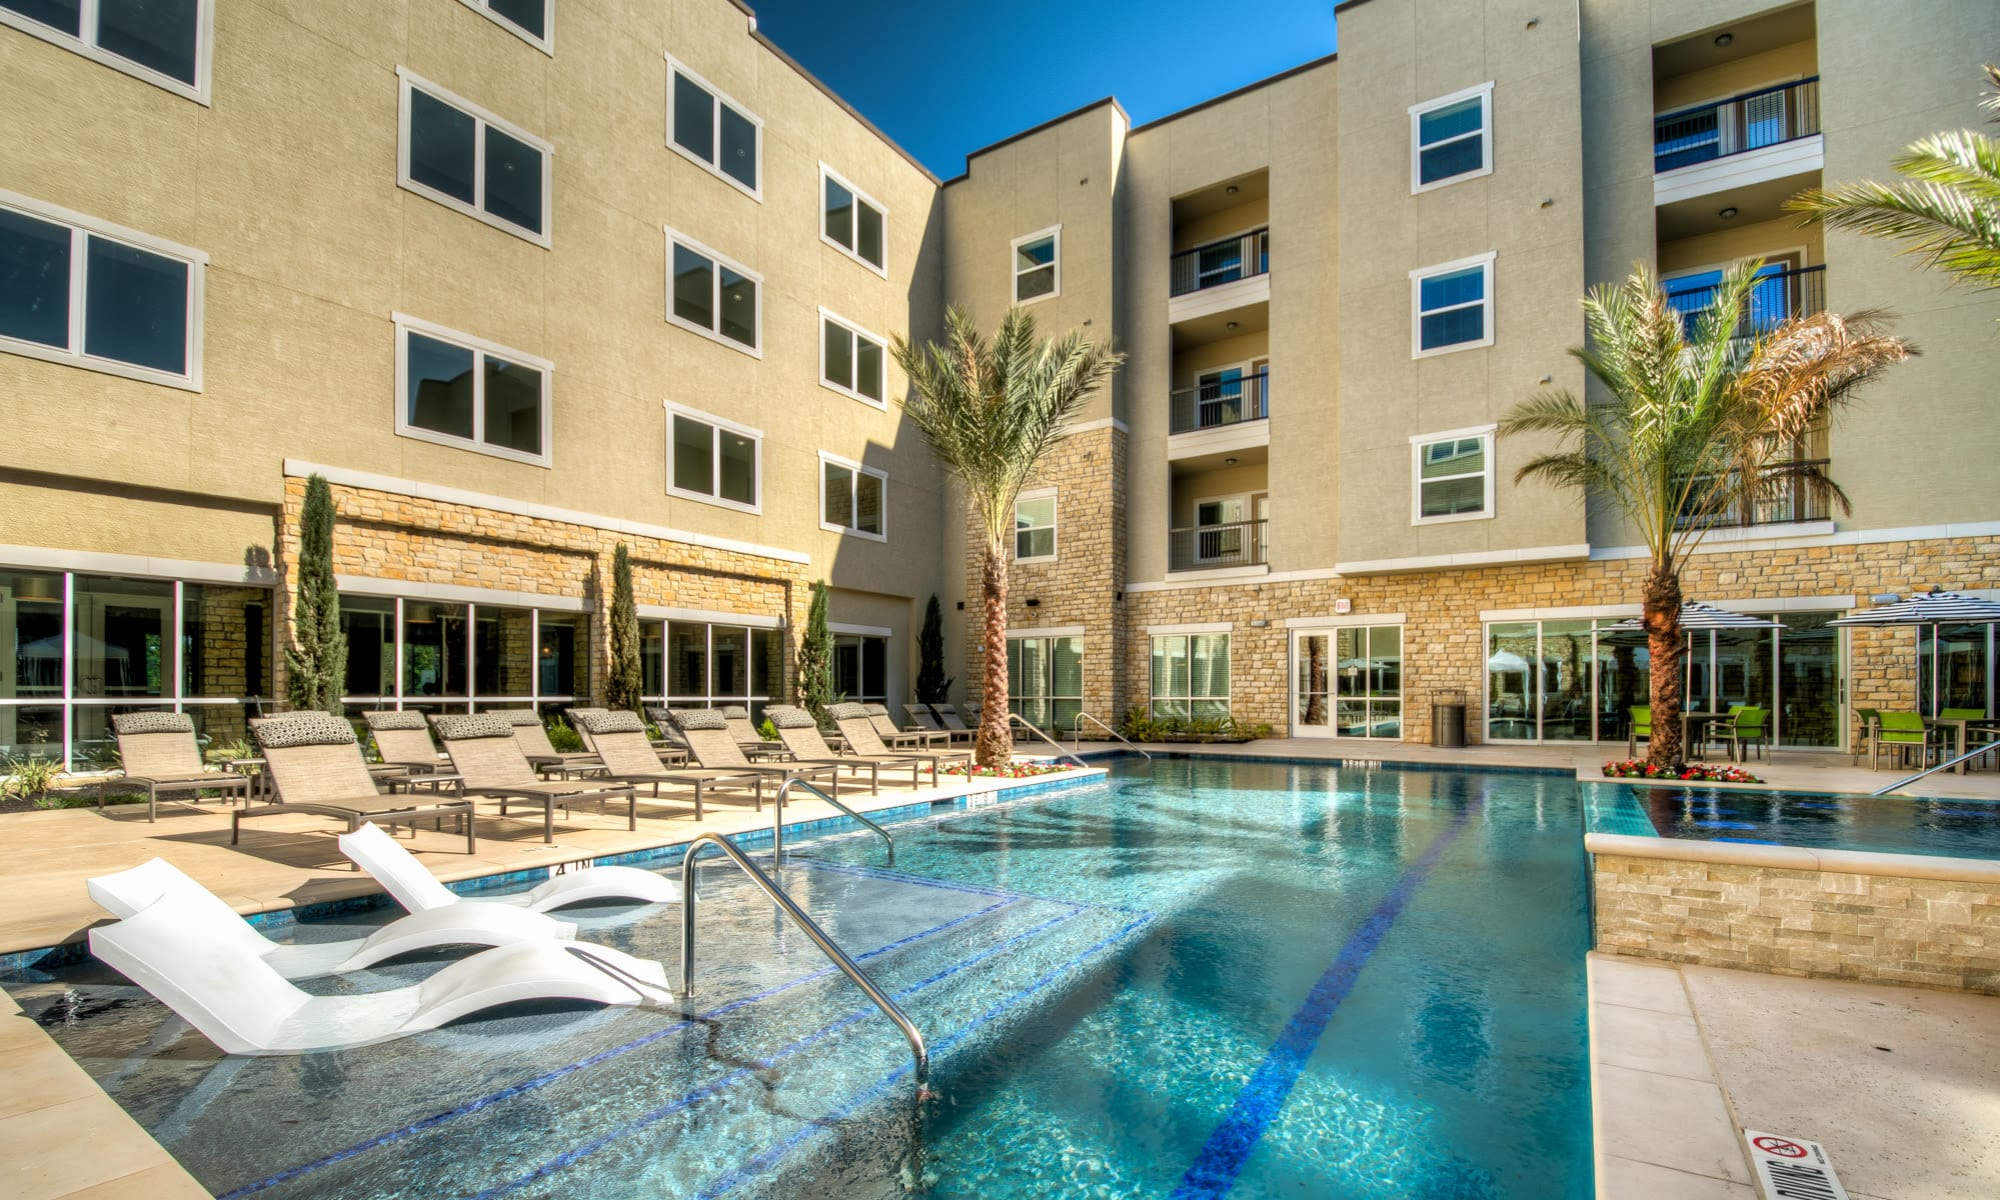 The Abbey at Dominion Crossing offers a luxury swimming pool in San Antonio, TX